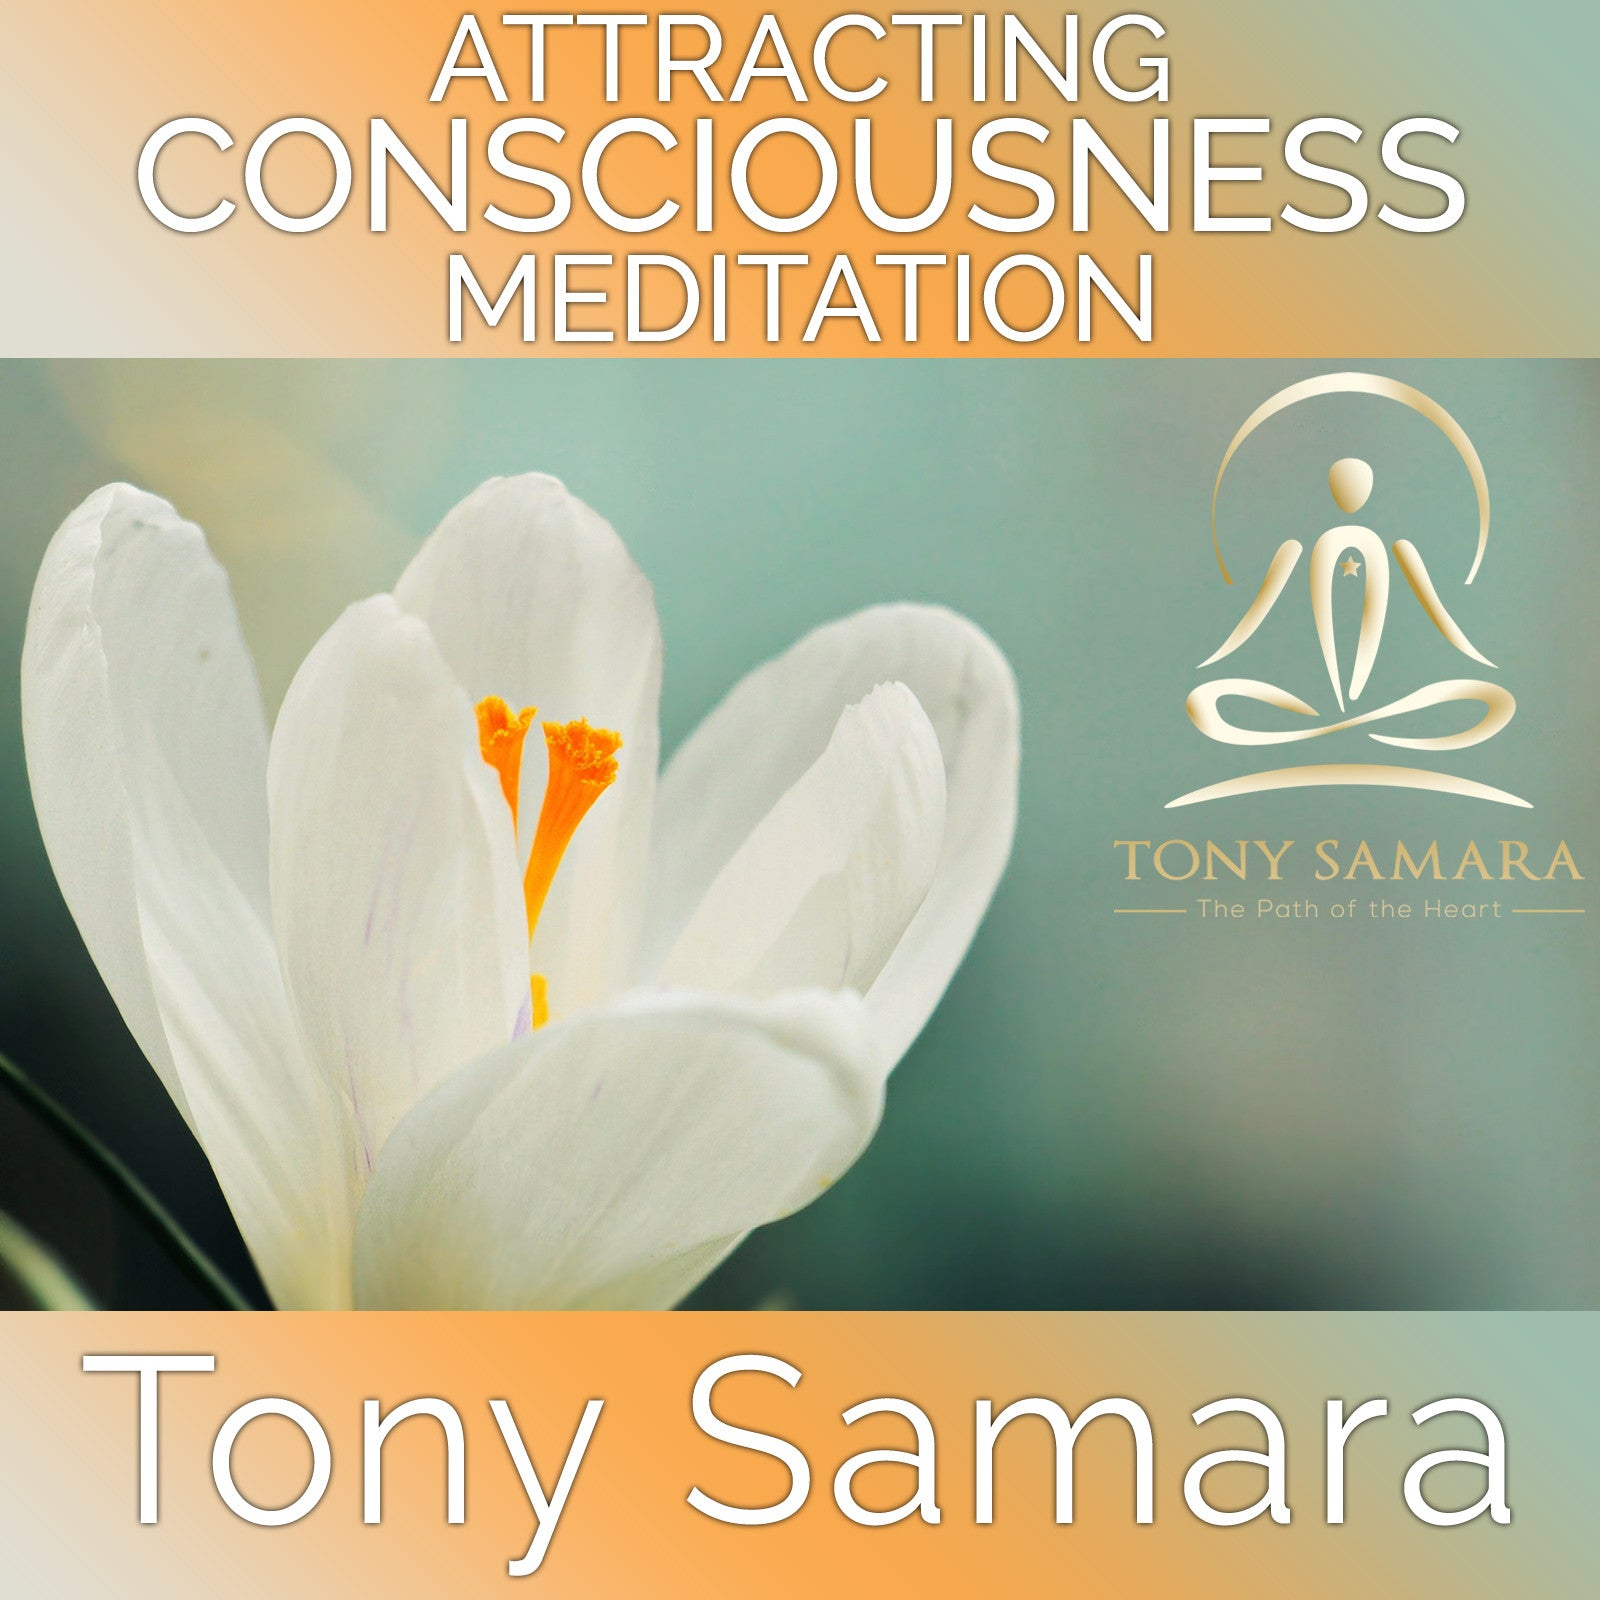 Attracting Consciousness Meditation (MP3 Audio Download) - Tony Samara Meditation